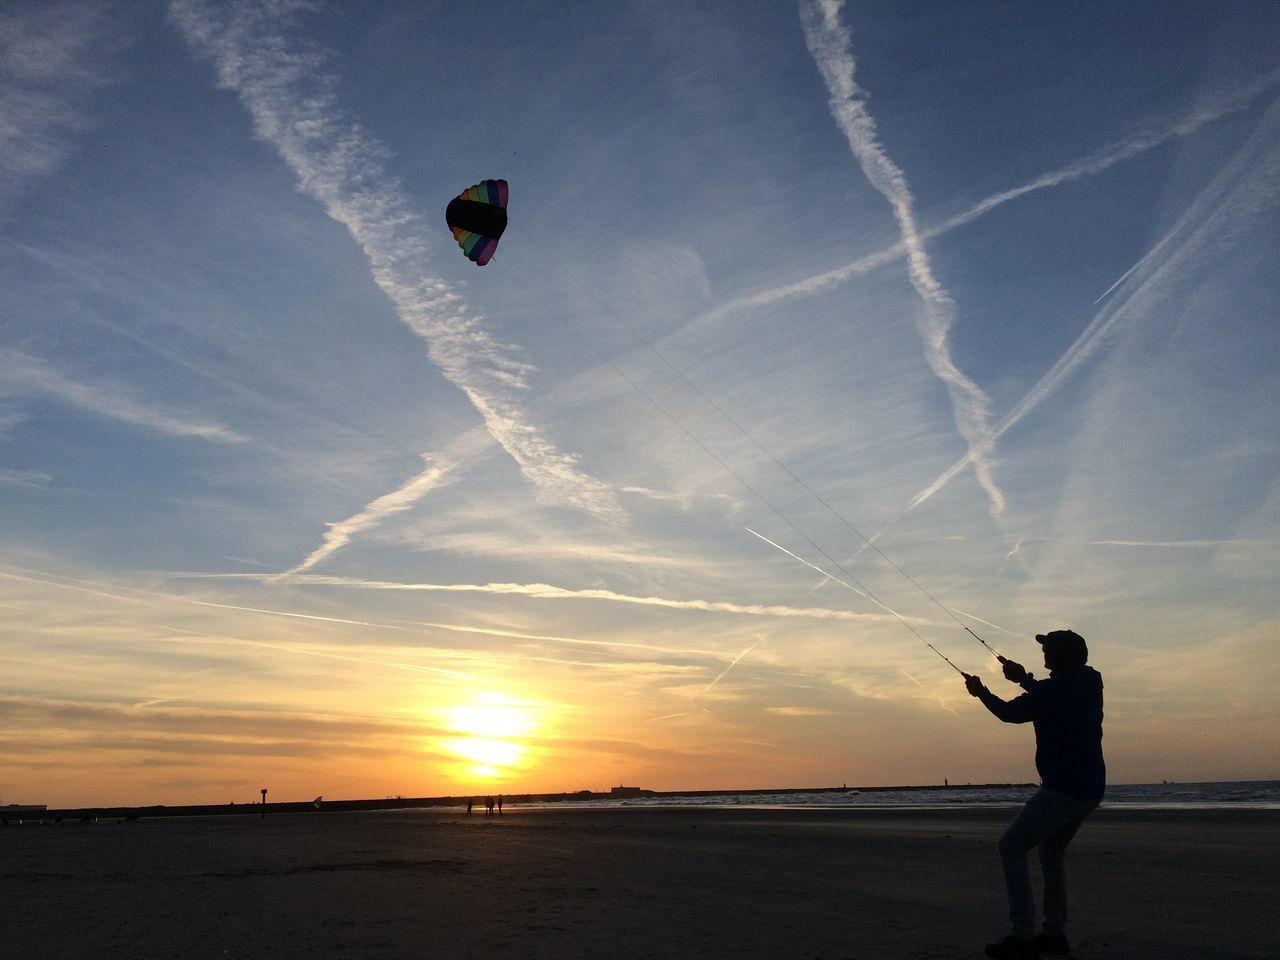 Adult Adults Only Beach Day Horizon Over Water Kite Kite - Toy Kitesurfing Nature One Man Only One Person Only Men Outdoors People Sea Silhouette Sky Standing